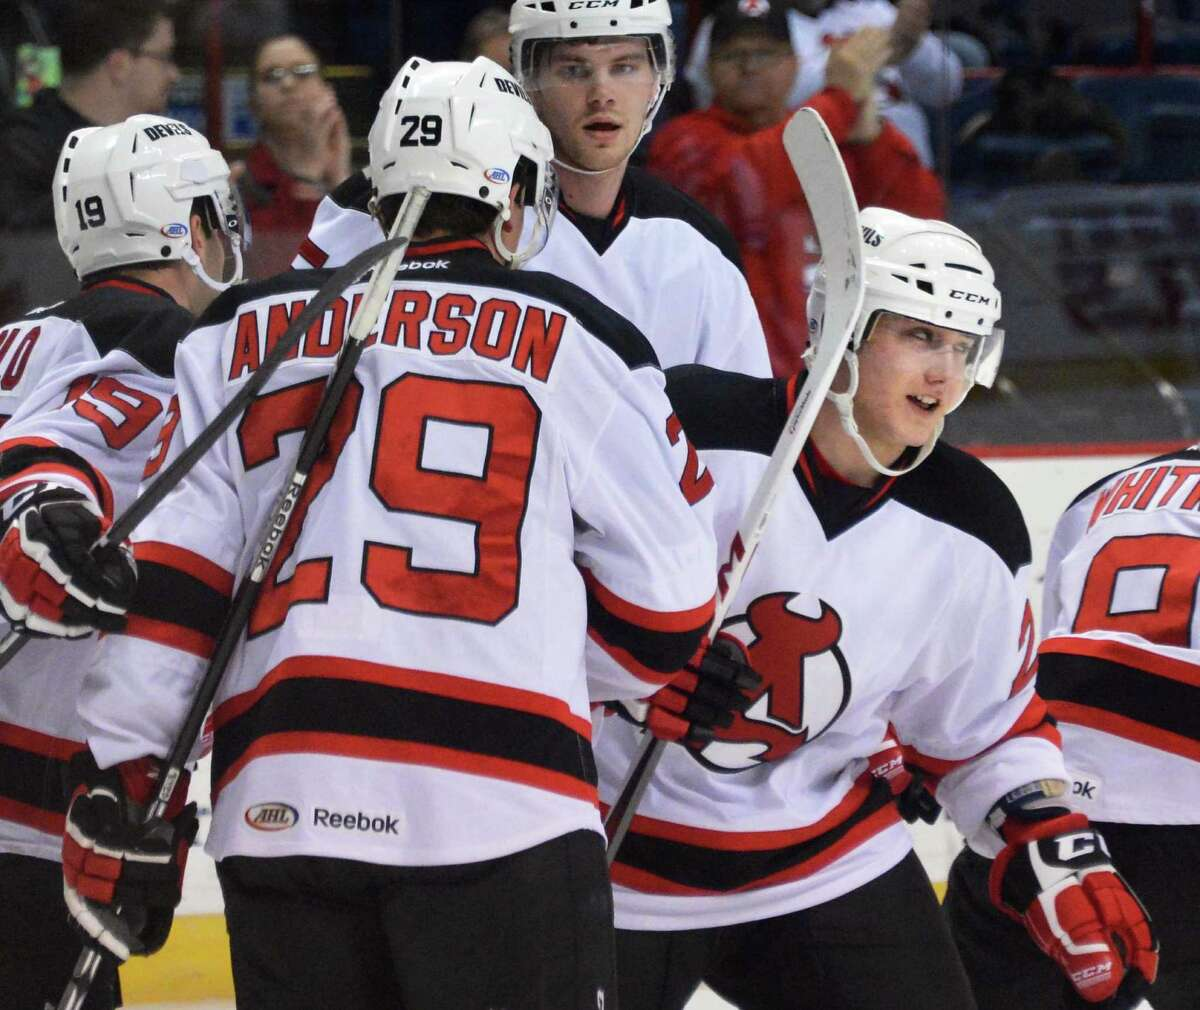 Albany Devils' #20 Reid Boucher, at right, and team mates celebrate his first period goal during Saturday's game against the Portland Pirates at the Times Union Center in Albany March 30, 2013. (John Carl D'Annibale / Times Union)